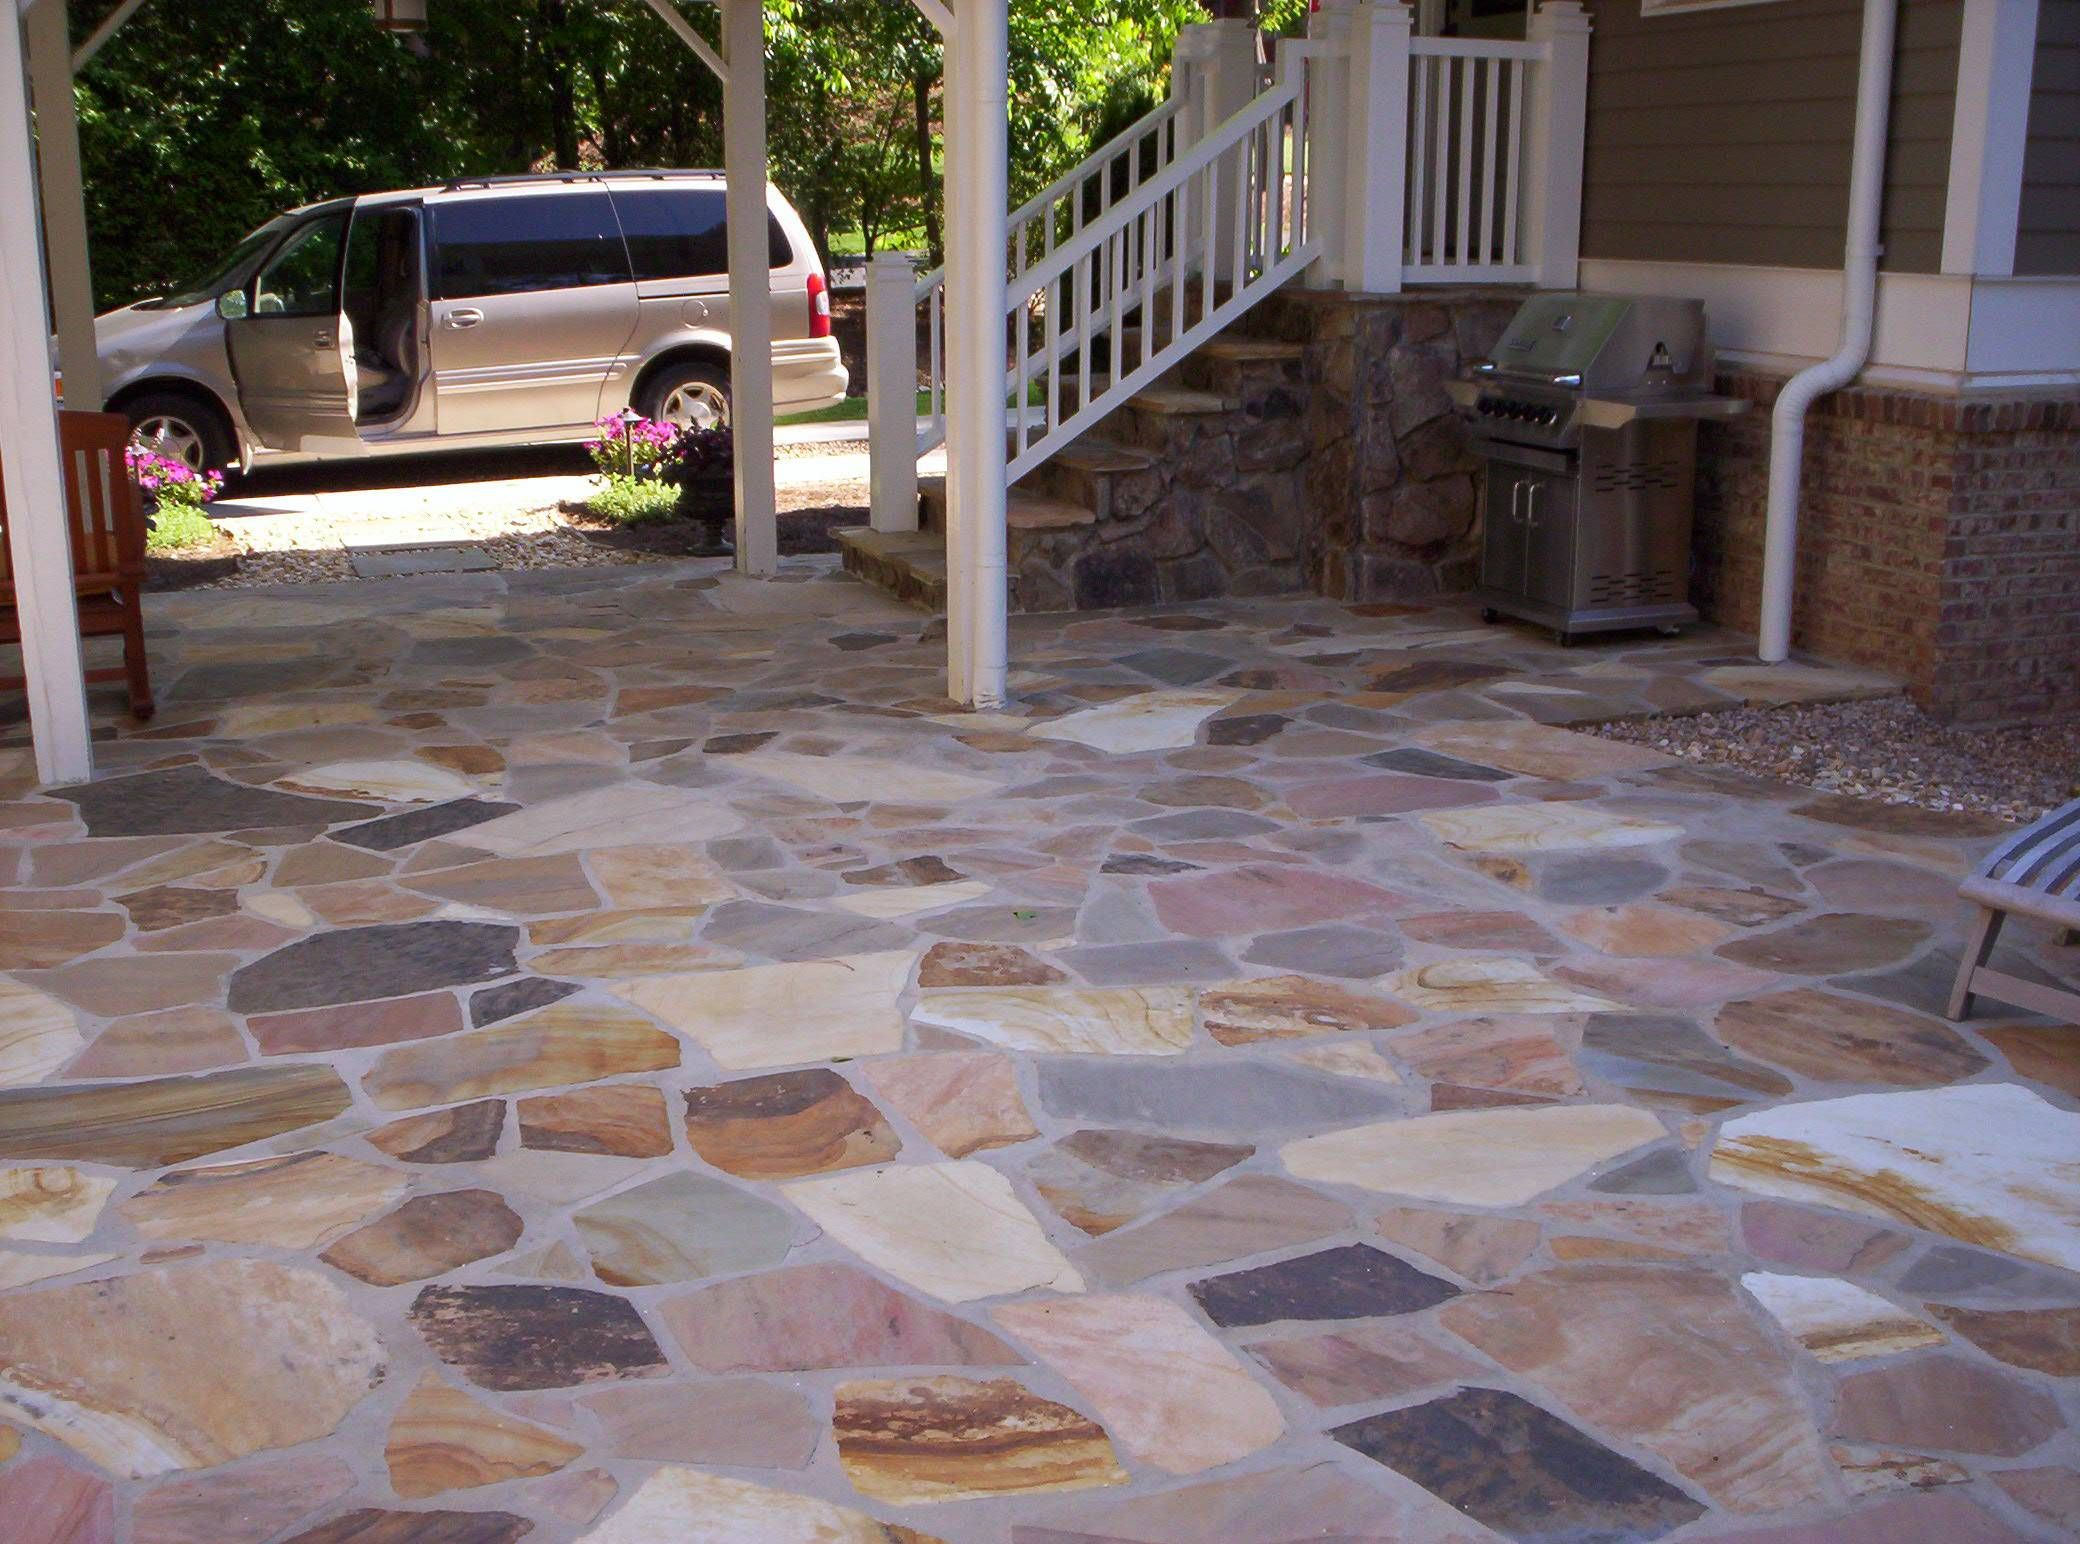 Best Stone Patio Ideas for Your Backyard Let's face it, a ... on Small Backyard Stone Patio Ideas id=27393